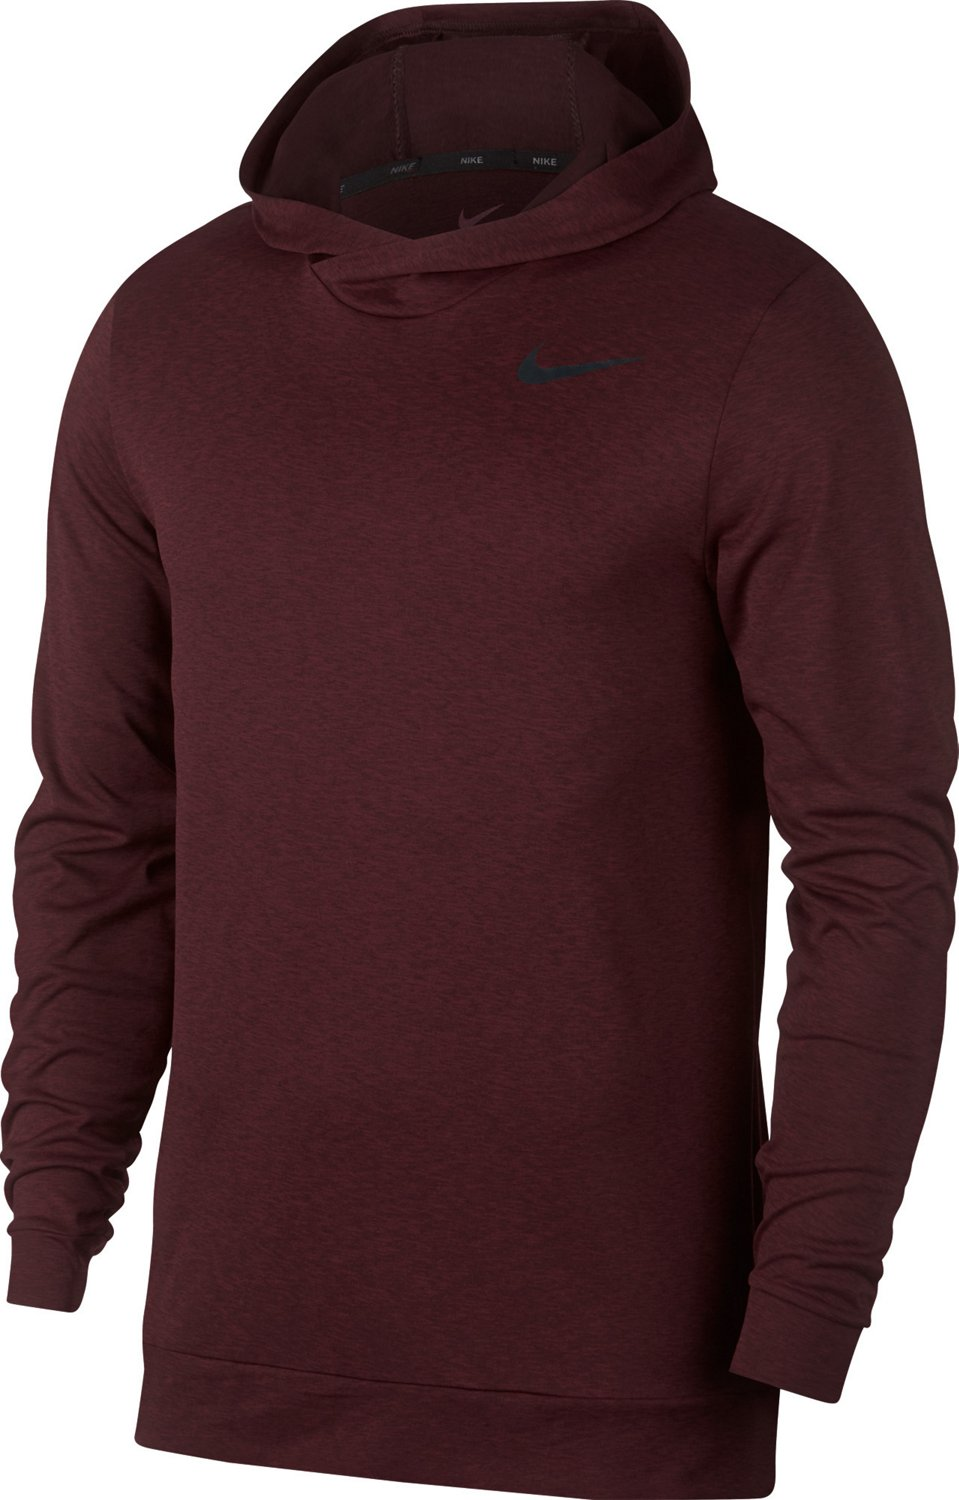 d9ba31edf2a7 Display product reviews for Nike Men s Breathe Training Hoodie